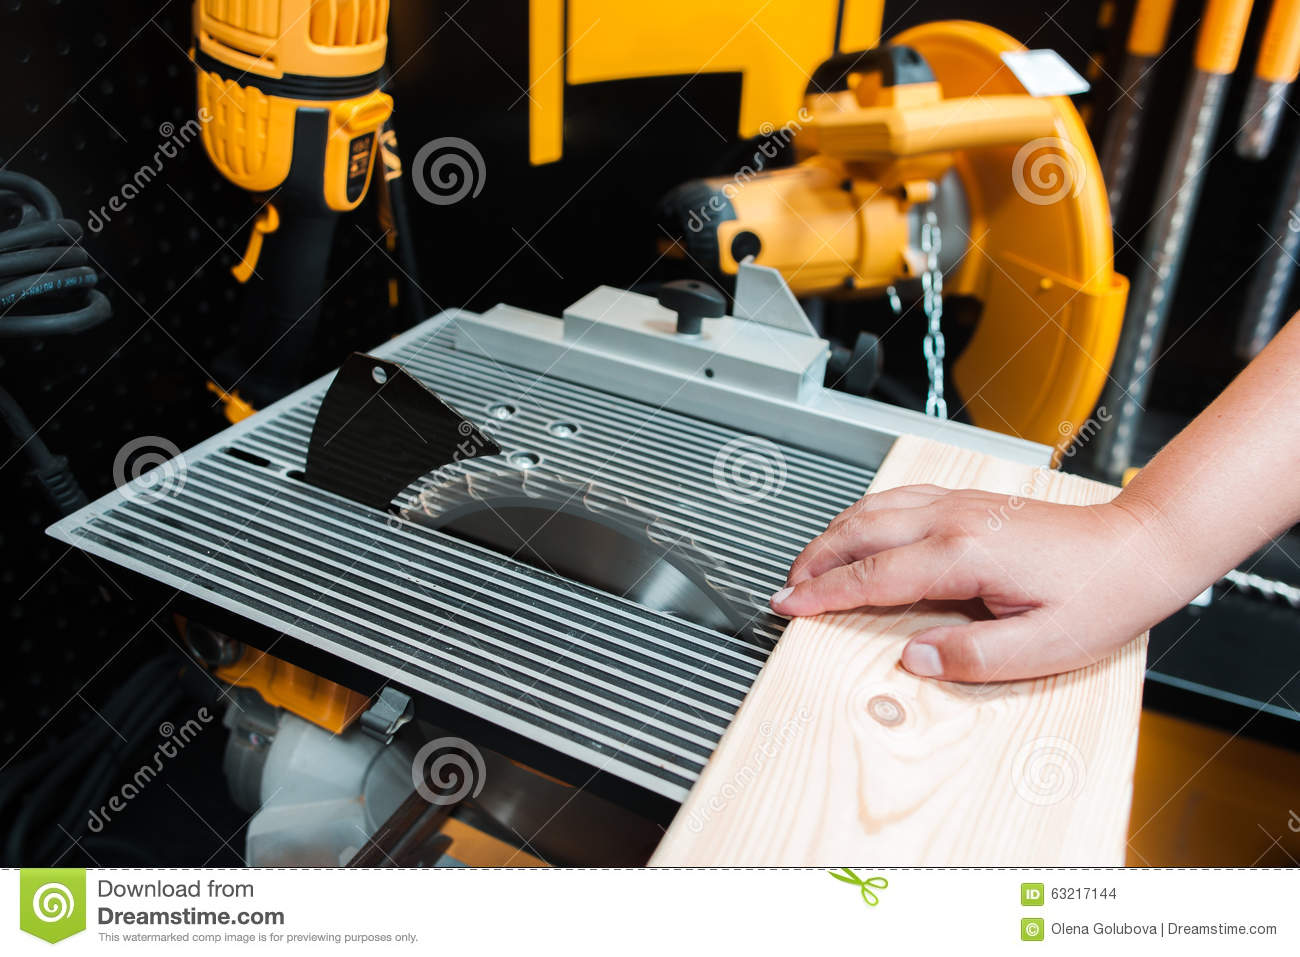 Injuries (dangerous Work) In Woodworking Manufacturing Stock Photo - Image of craftsman ...